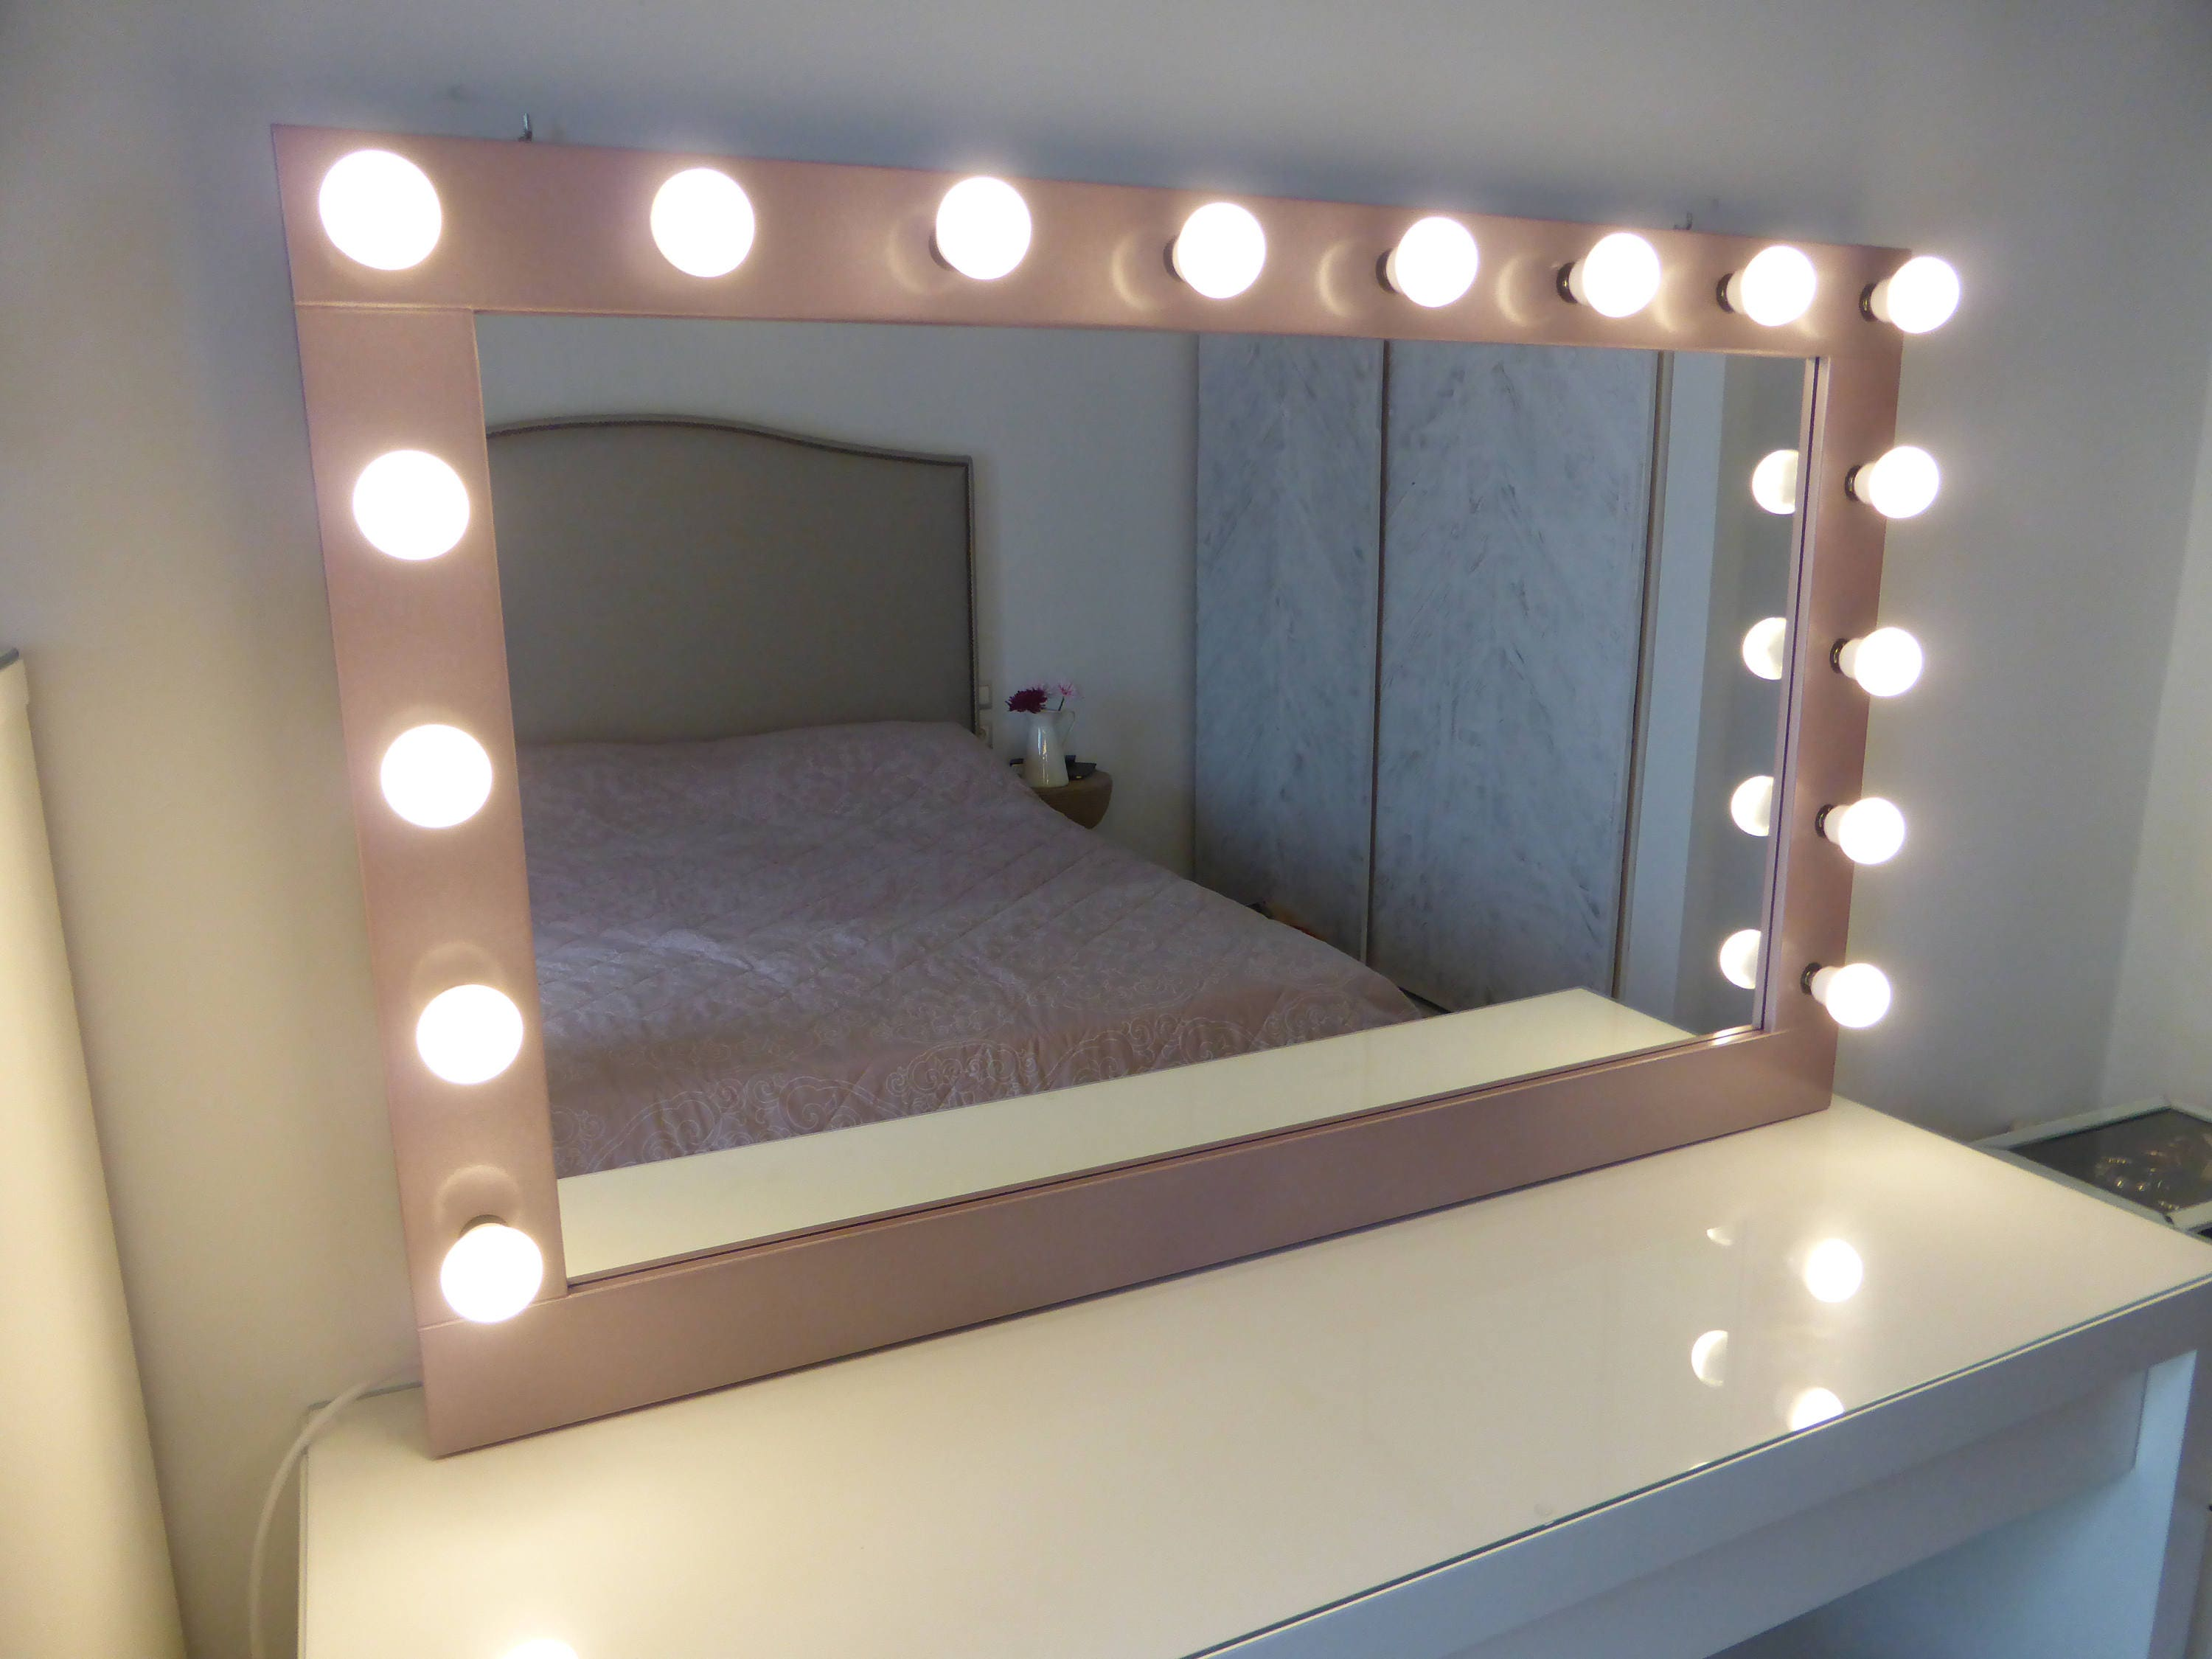 stand up vanity mirror with lights. XL Hollywood mirror  43 x 27 Rose gold vanity Make up Mirror with lights Vanity in many colors